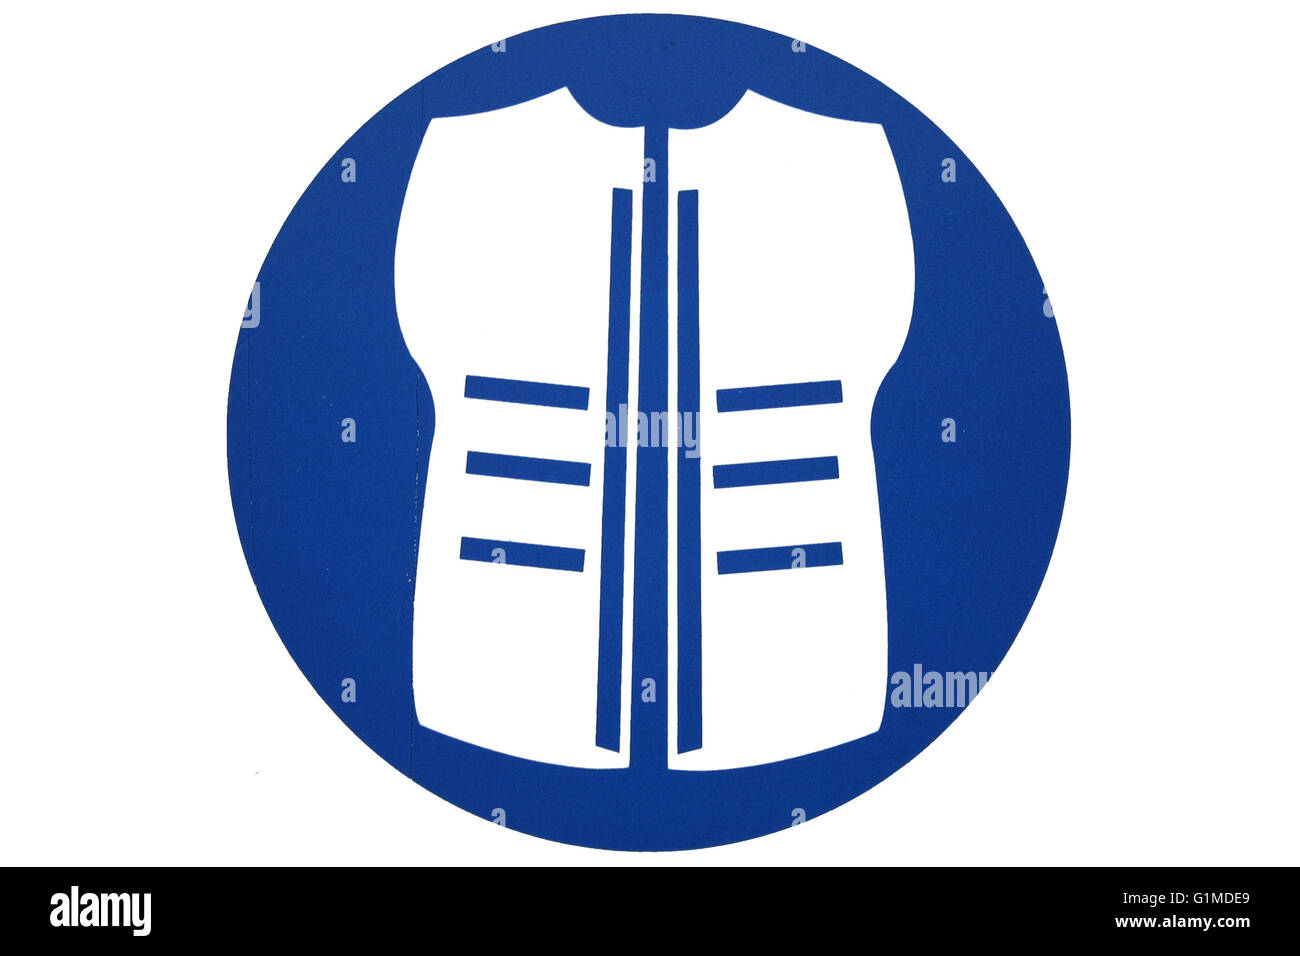 A circular safety jacke or vest sign in blue and white  isolated - Stock Image